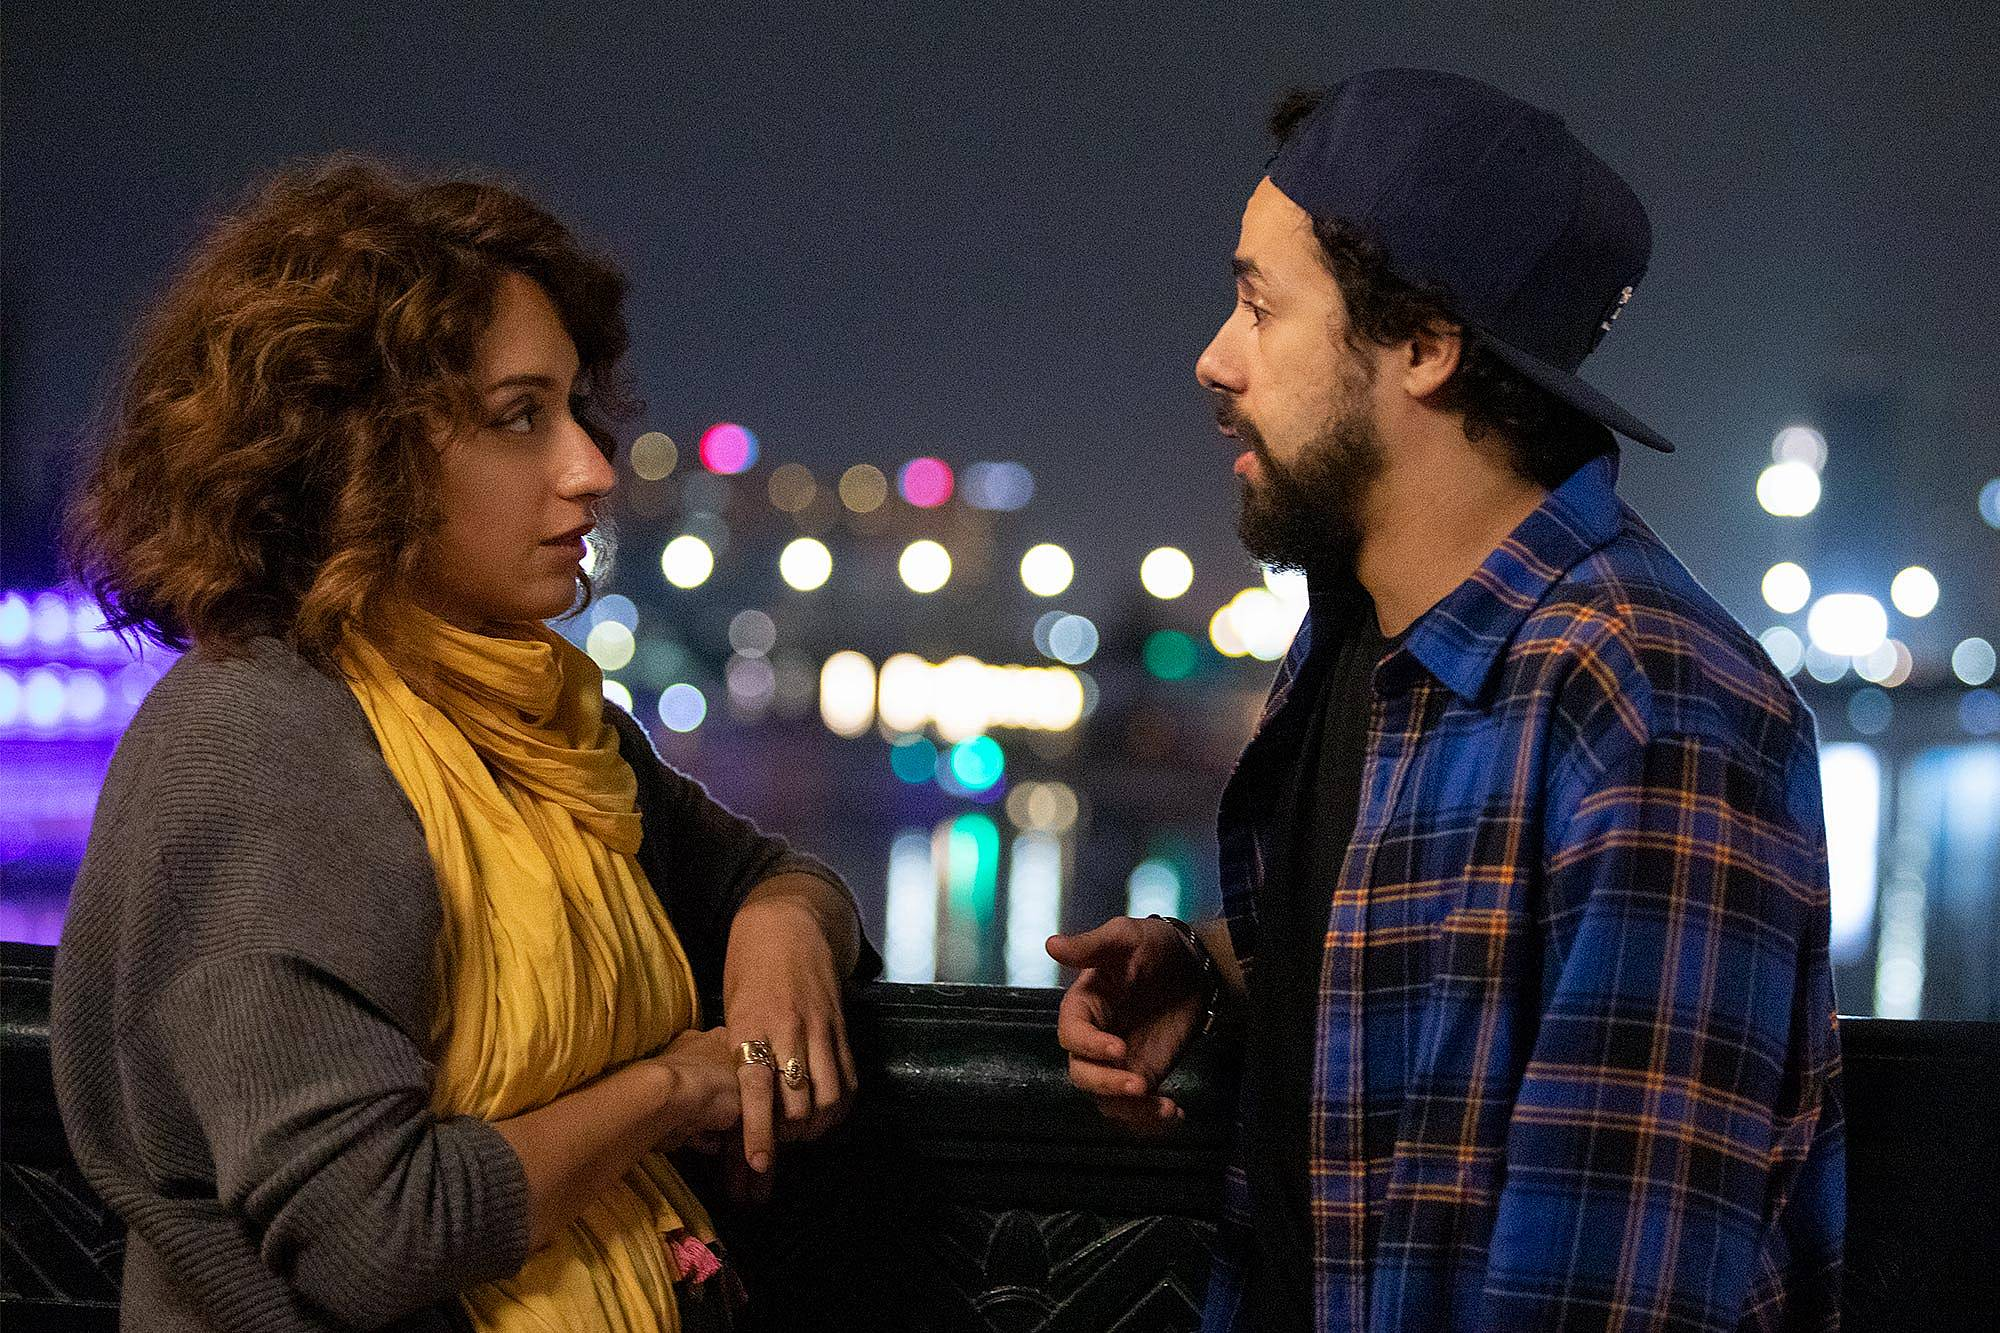 Ramy falls for his cousin, played by Rosaline Elbay - but it causes complications (Hulu)